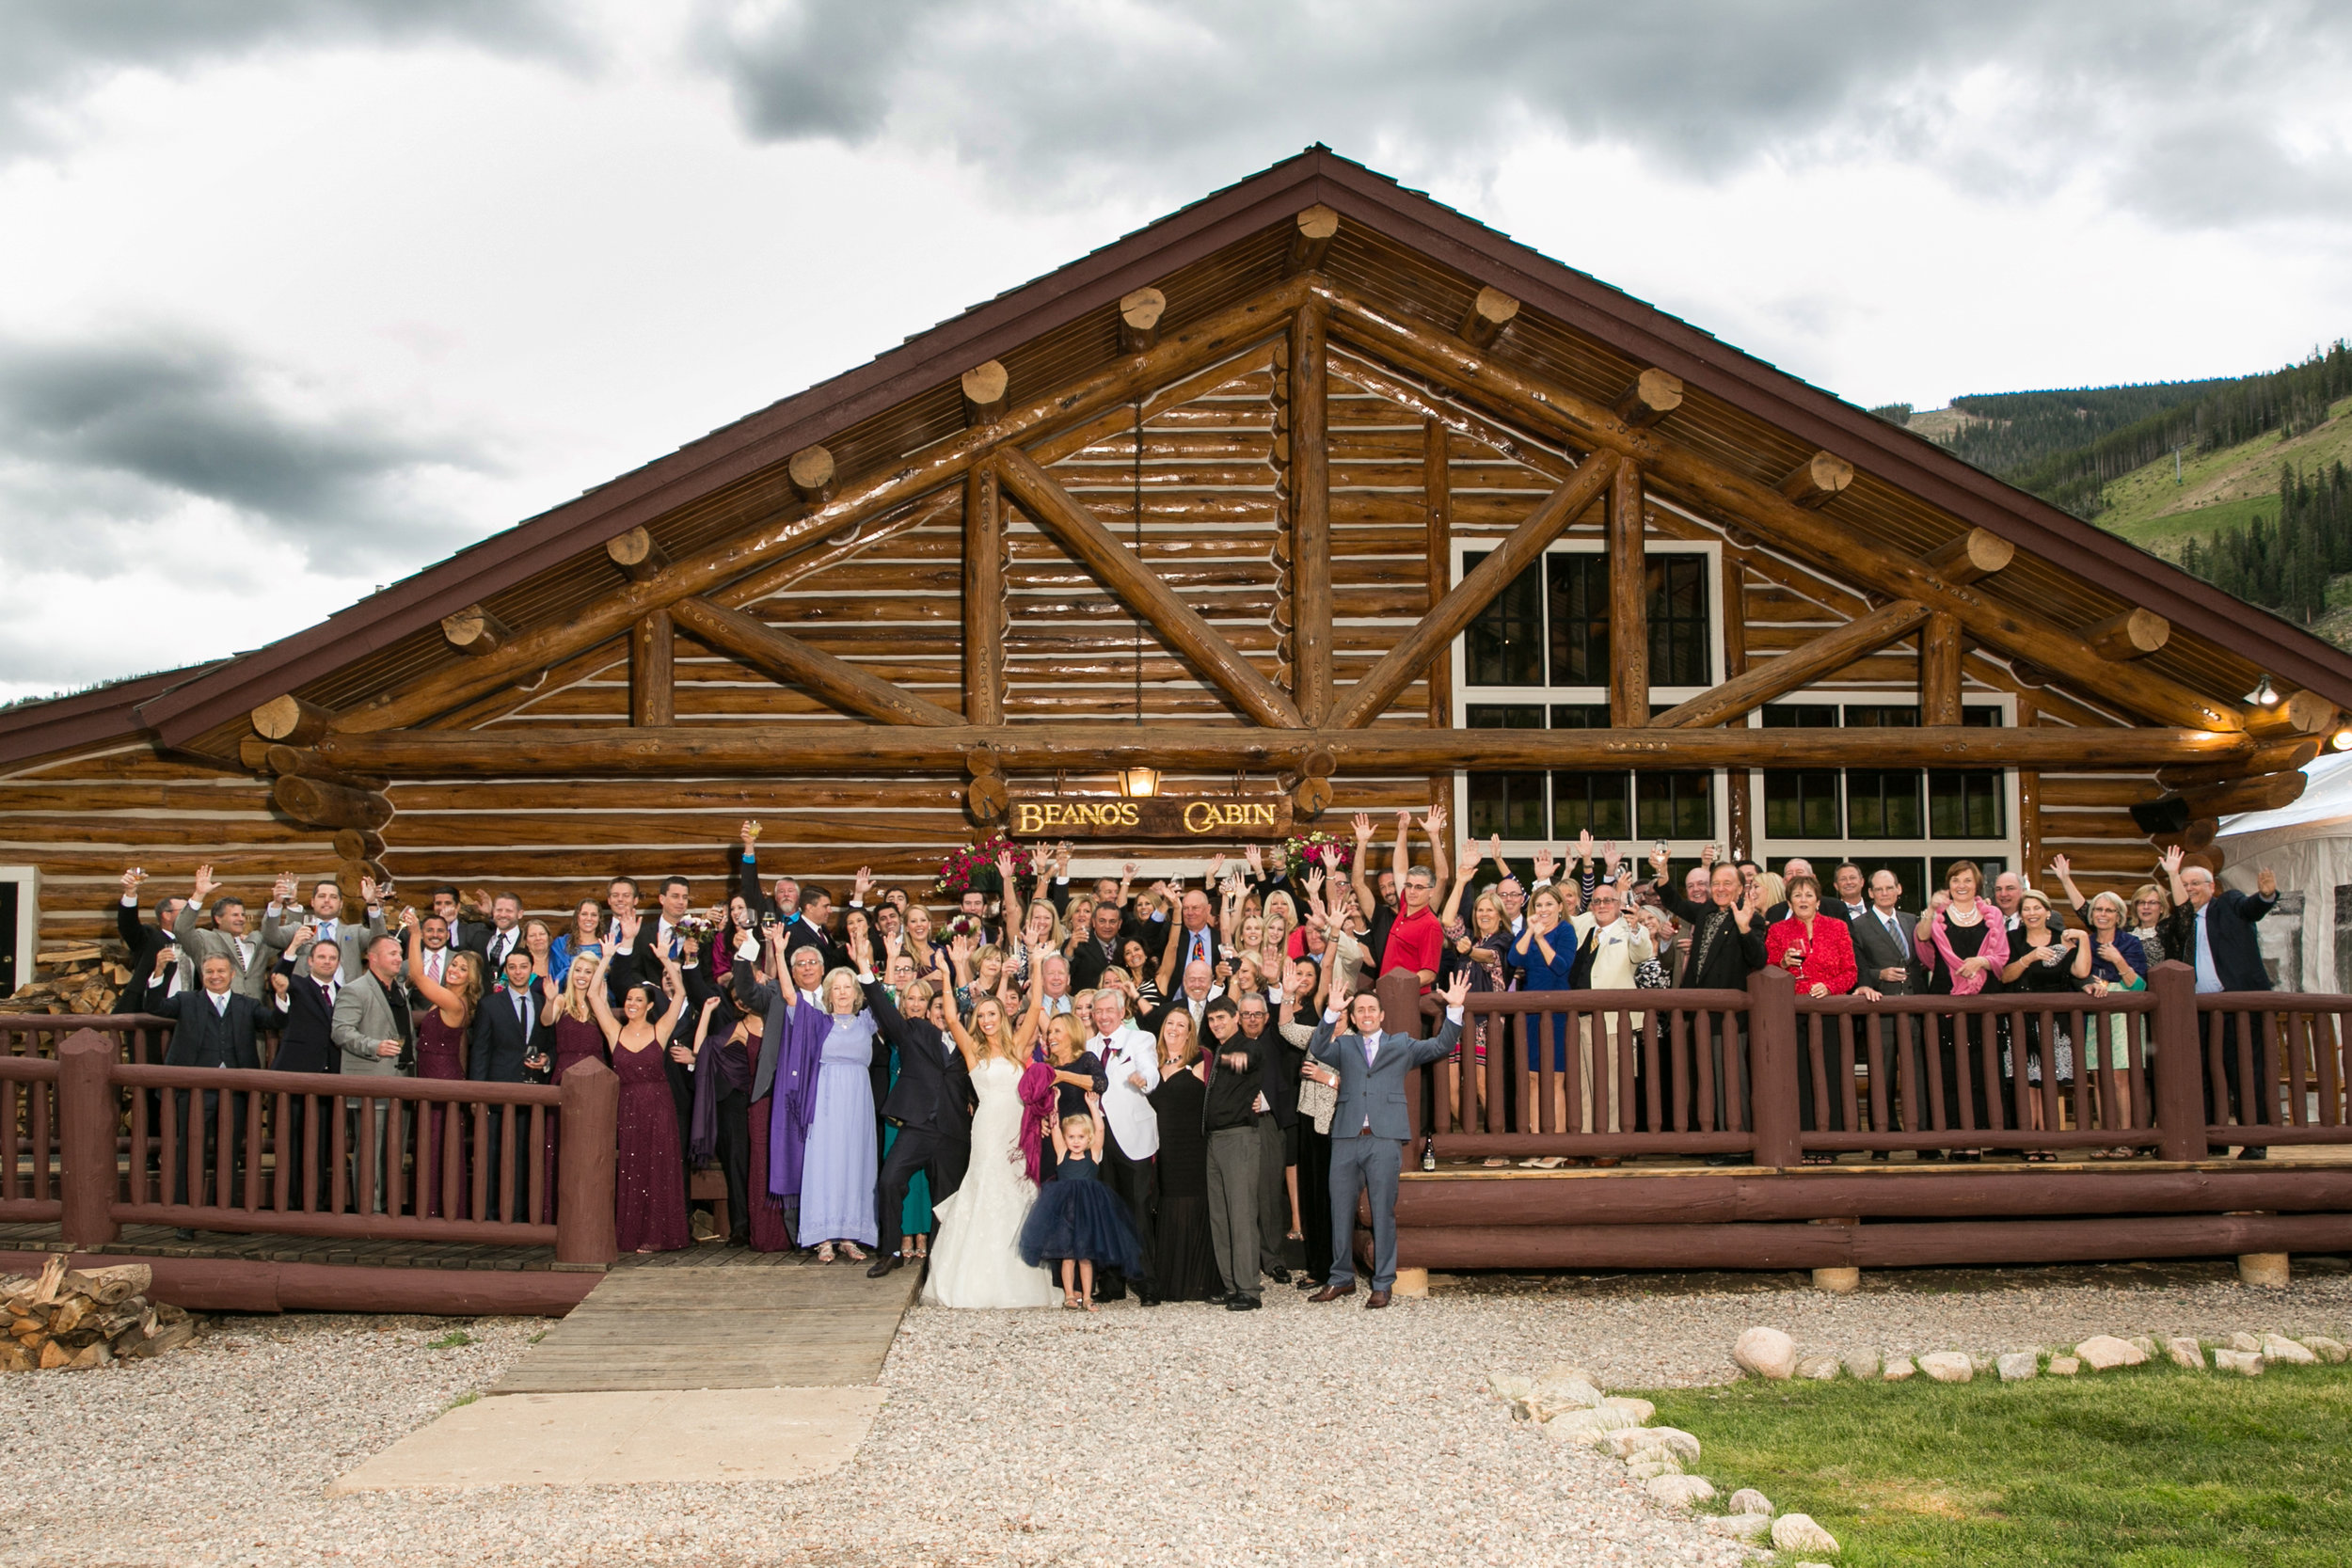 wedding-services-beaver-creek-axelphoto.jpg